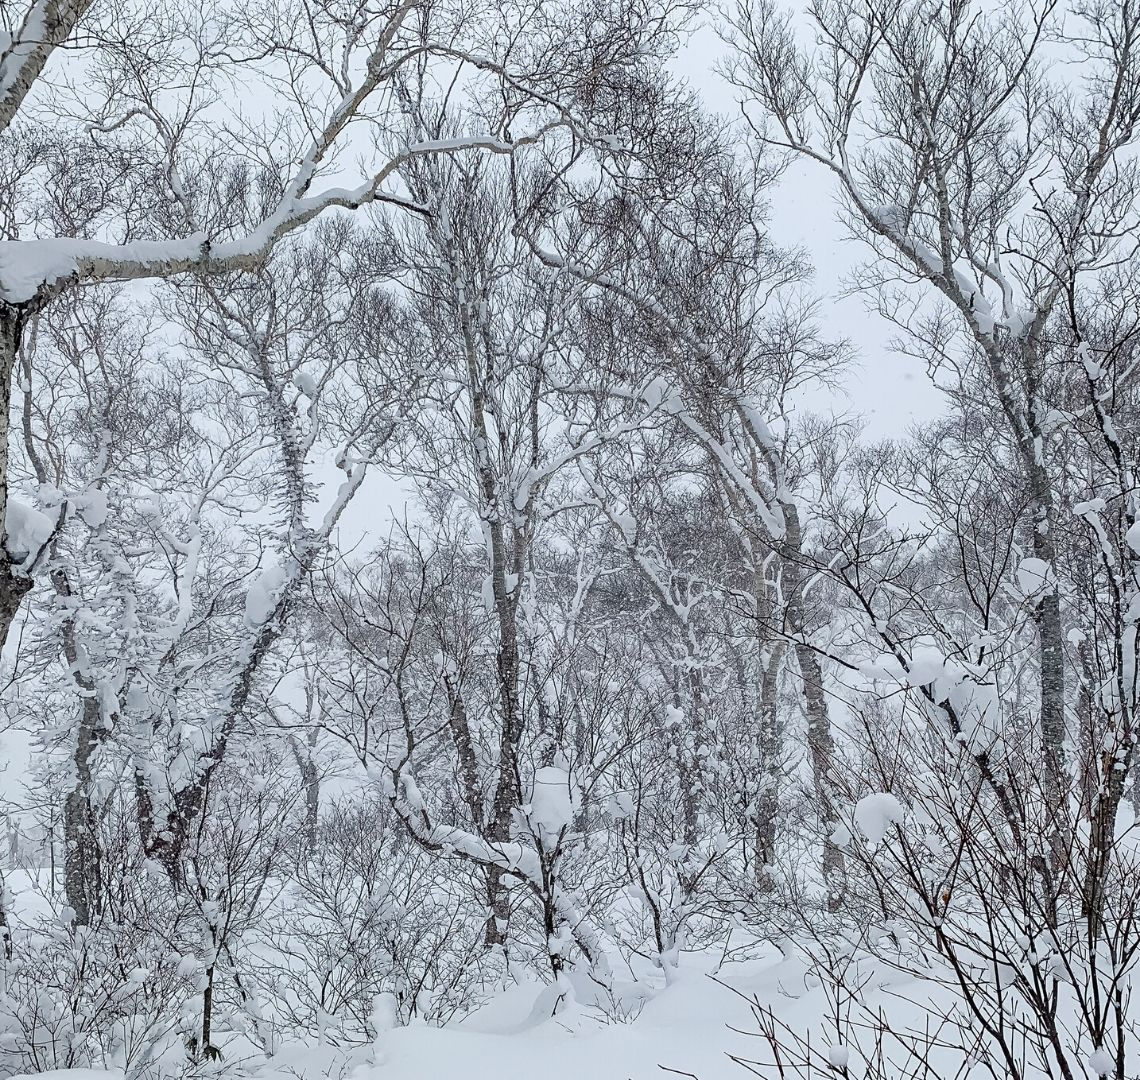 5 reasons to go family skiing in Niseko - I took this photo when I was right in the middle of the trees ,it had just stopped snowing and the trees were heavy with snow and the sky is still white.